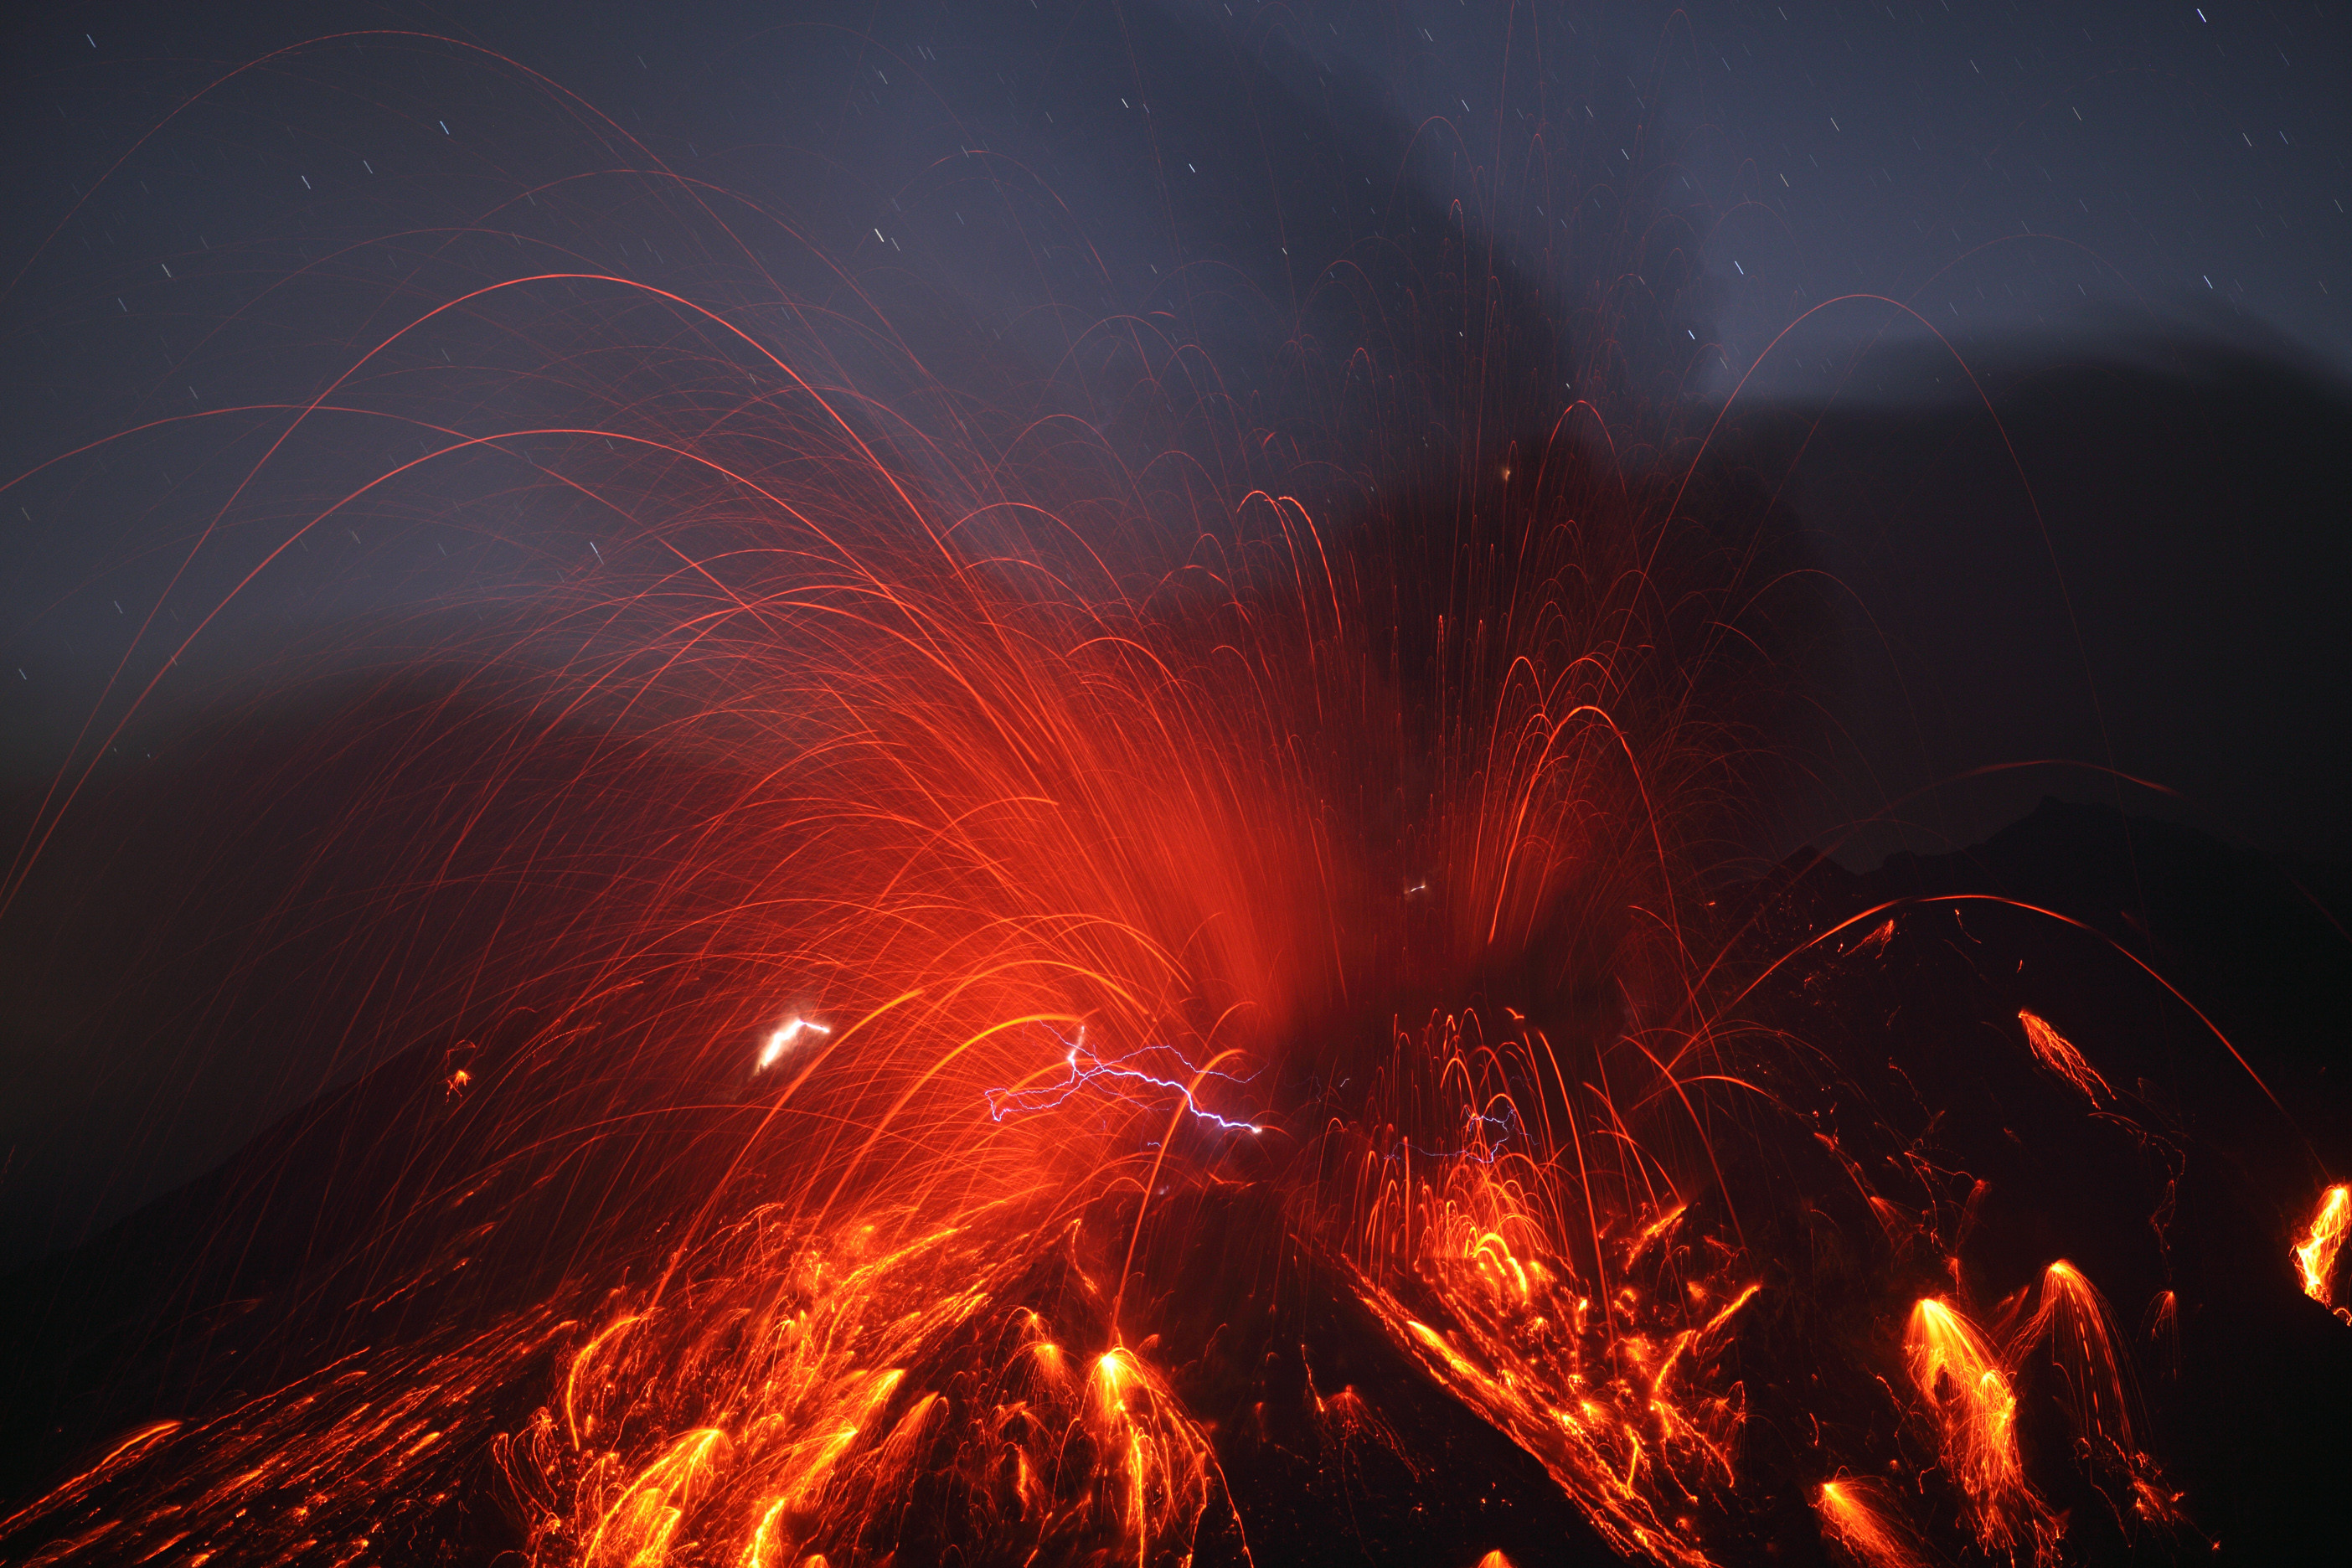 Res: 2808x1872, See Explanation. Clicking on the picture will download the highest  resolution version available. Sakurajima Volcano with Lightning